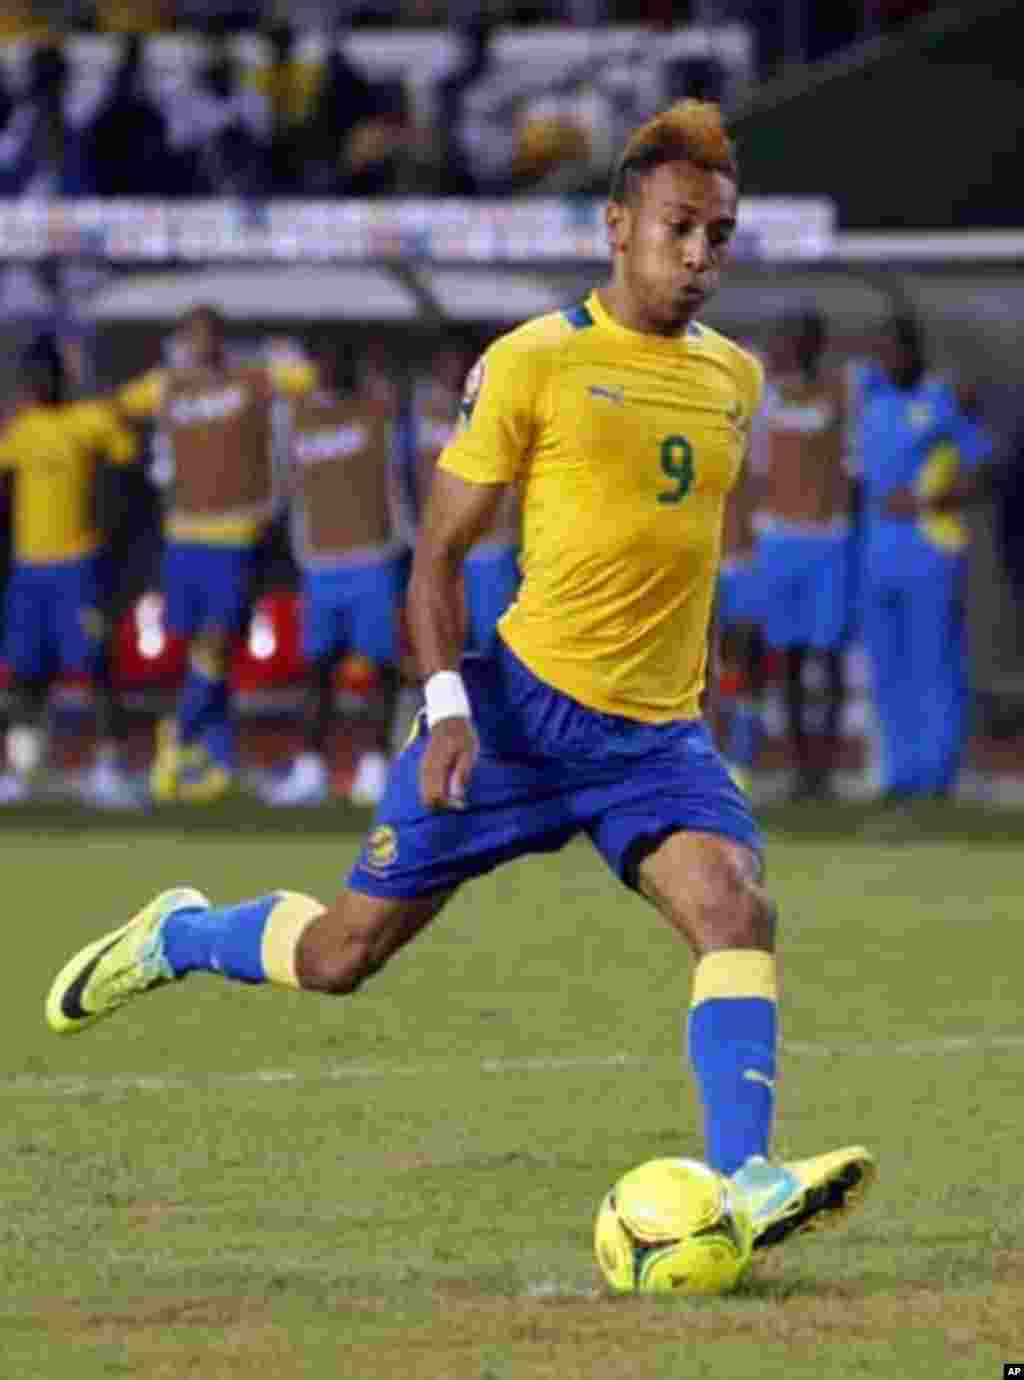 Gabon's Pierre Aubameyang takes his penalty-kick in the penalty shootout during their African Cup of Nations quarter-final soccer match against Mali at the Stade De L'Amitie Stadium in Gabon's capital Libreville, February 5, 2012.